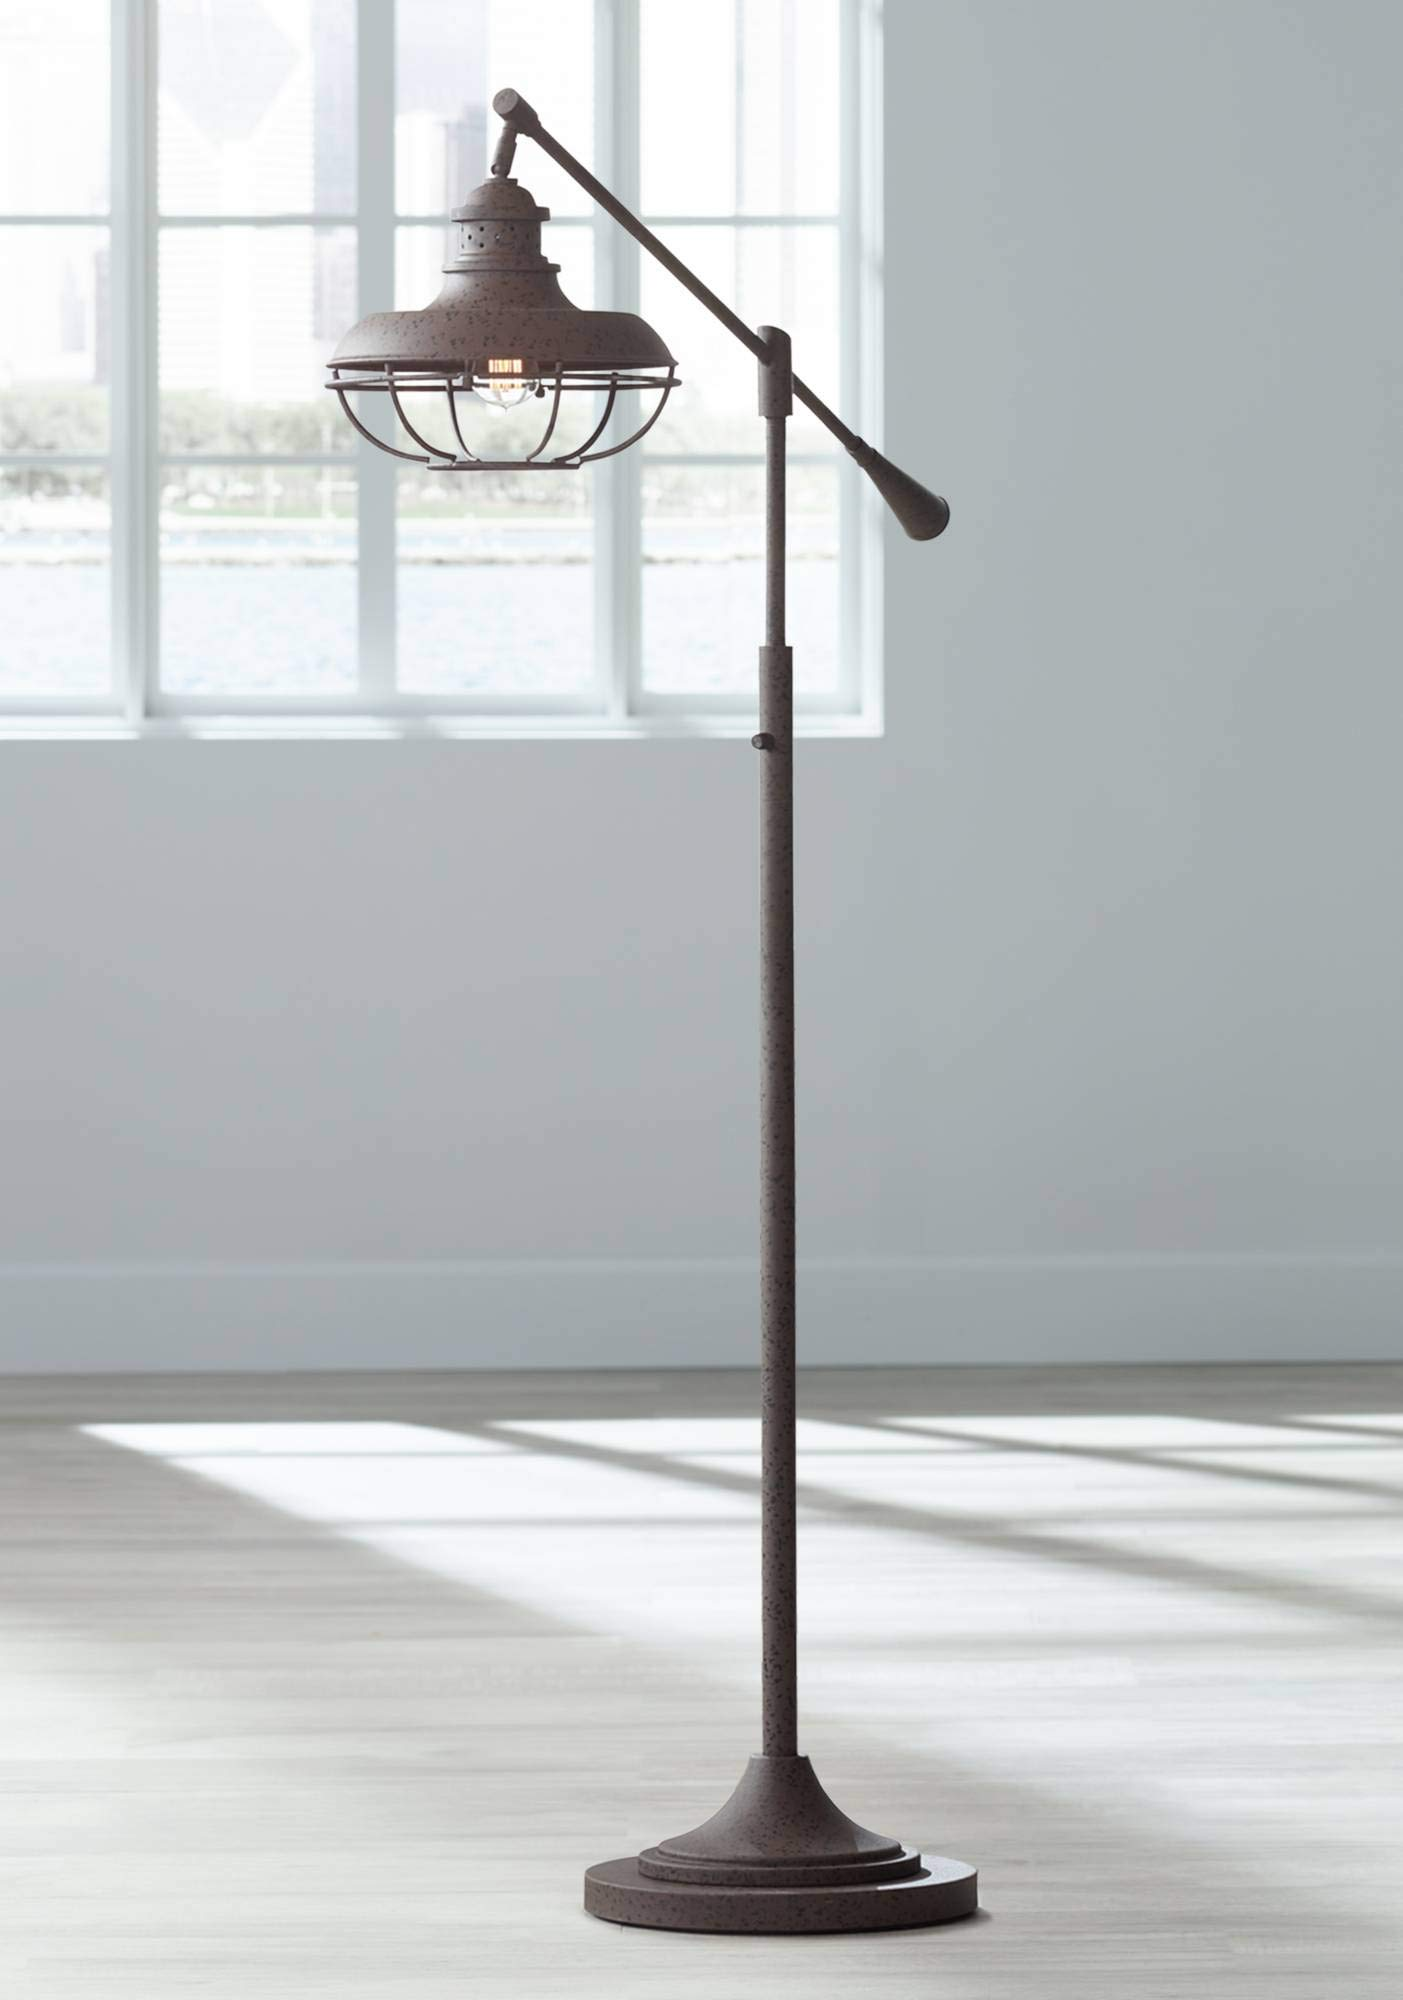 Franklin Park II Industrial Floor Lamp Boom Style Earthy Rust Metal Cage for Living Room Reading Bedroom Office - Franklin Iron Works